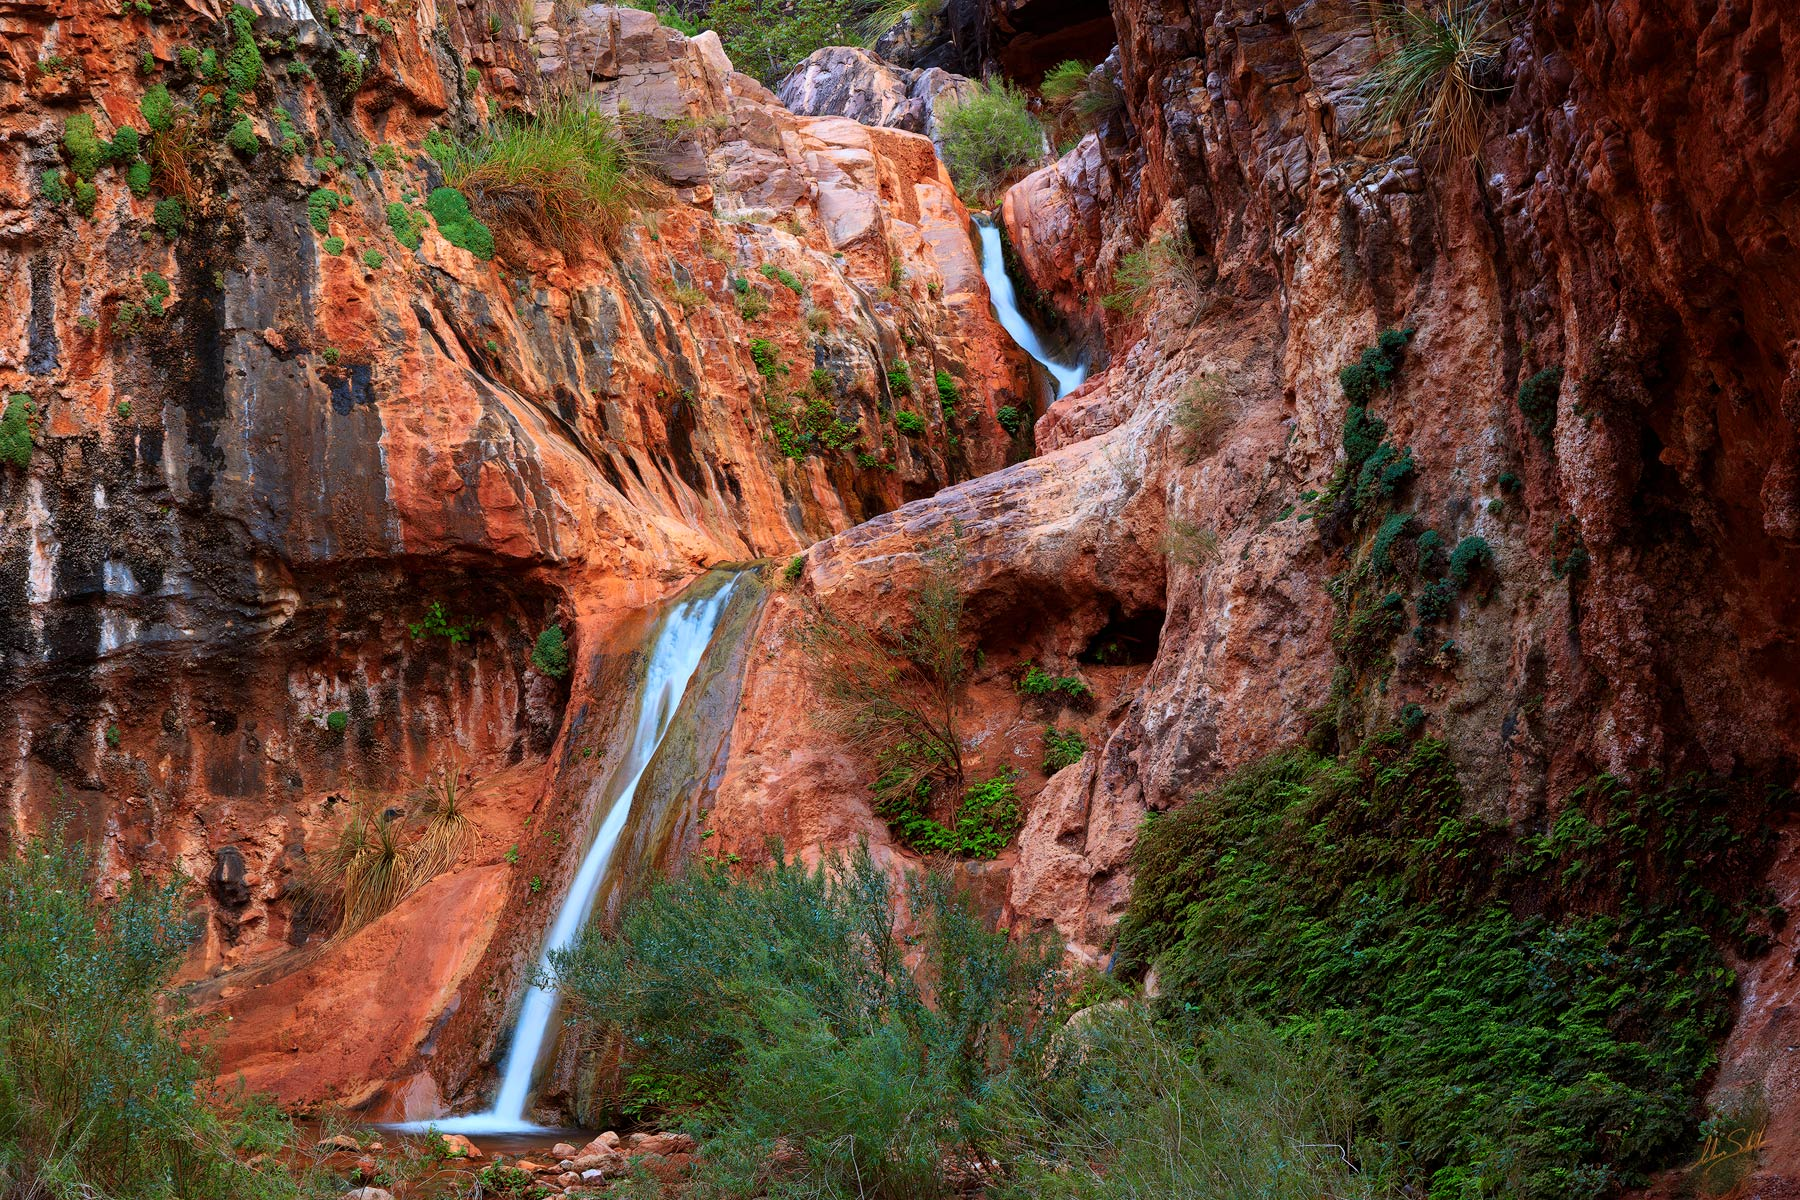 Arizona, Below the Rim, Colorado River, Grand Canyon, Grand Canyon National Park, Grotto, National Park, River Trip, Stone Creek, Water, Waterfall, photo